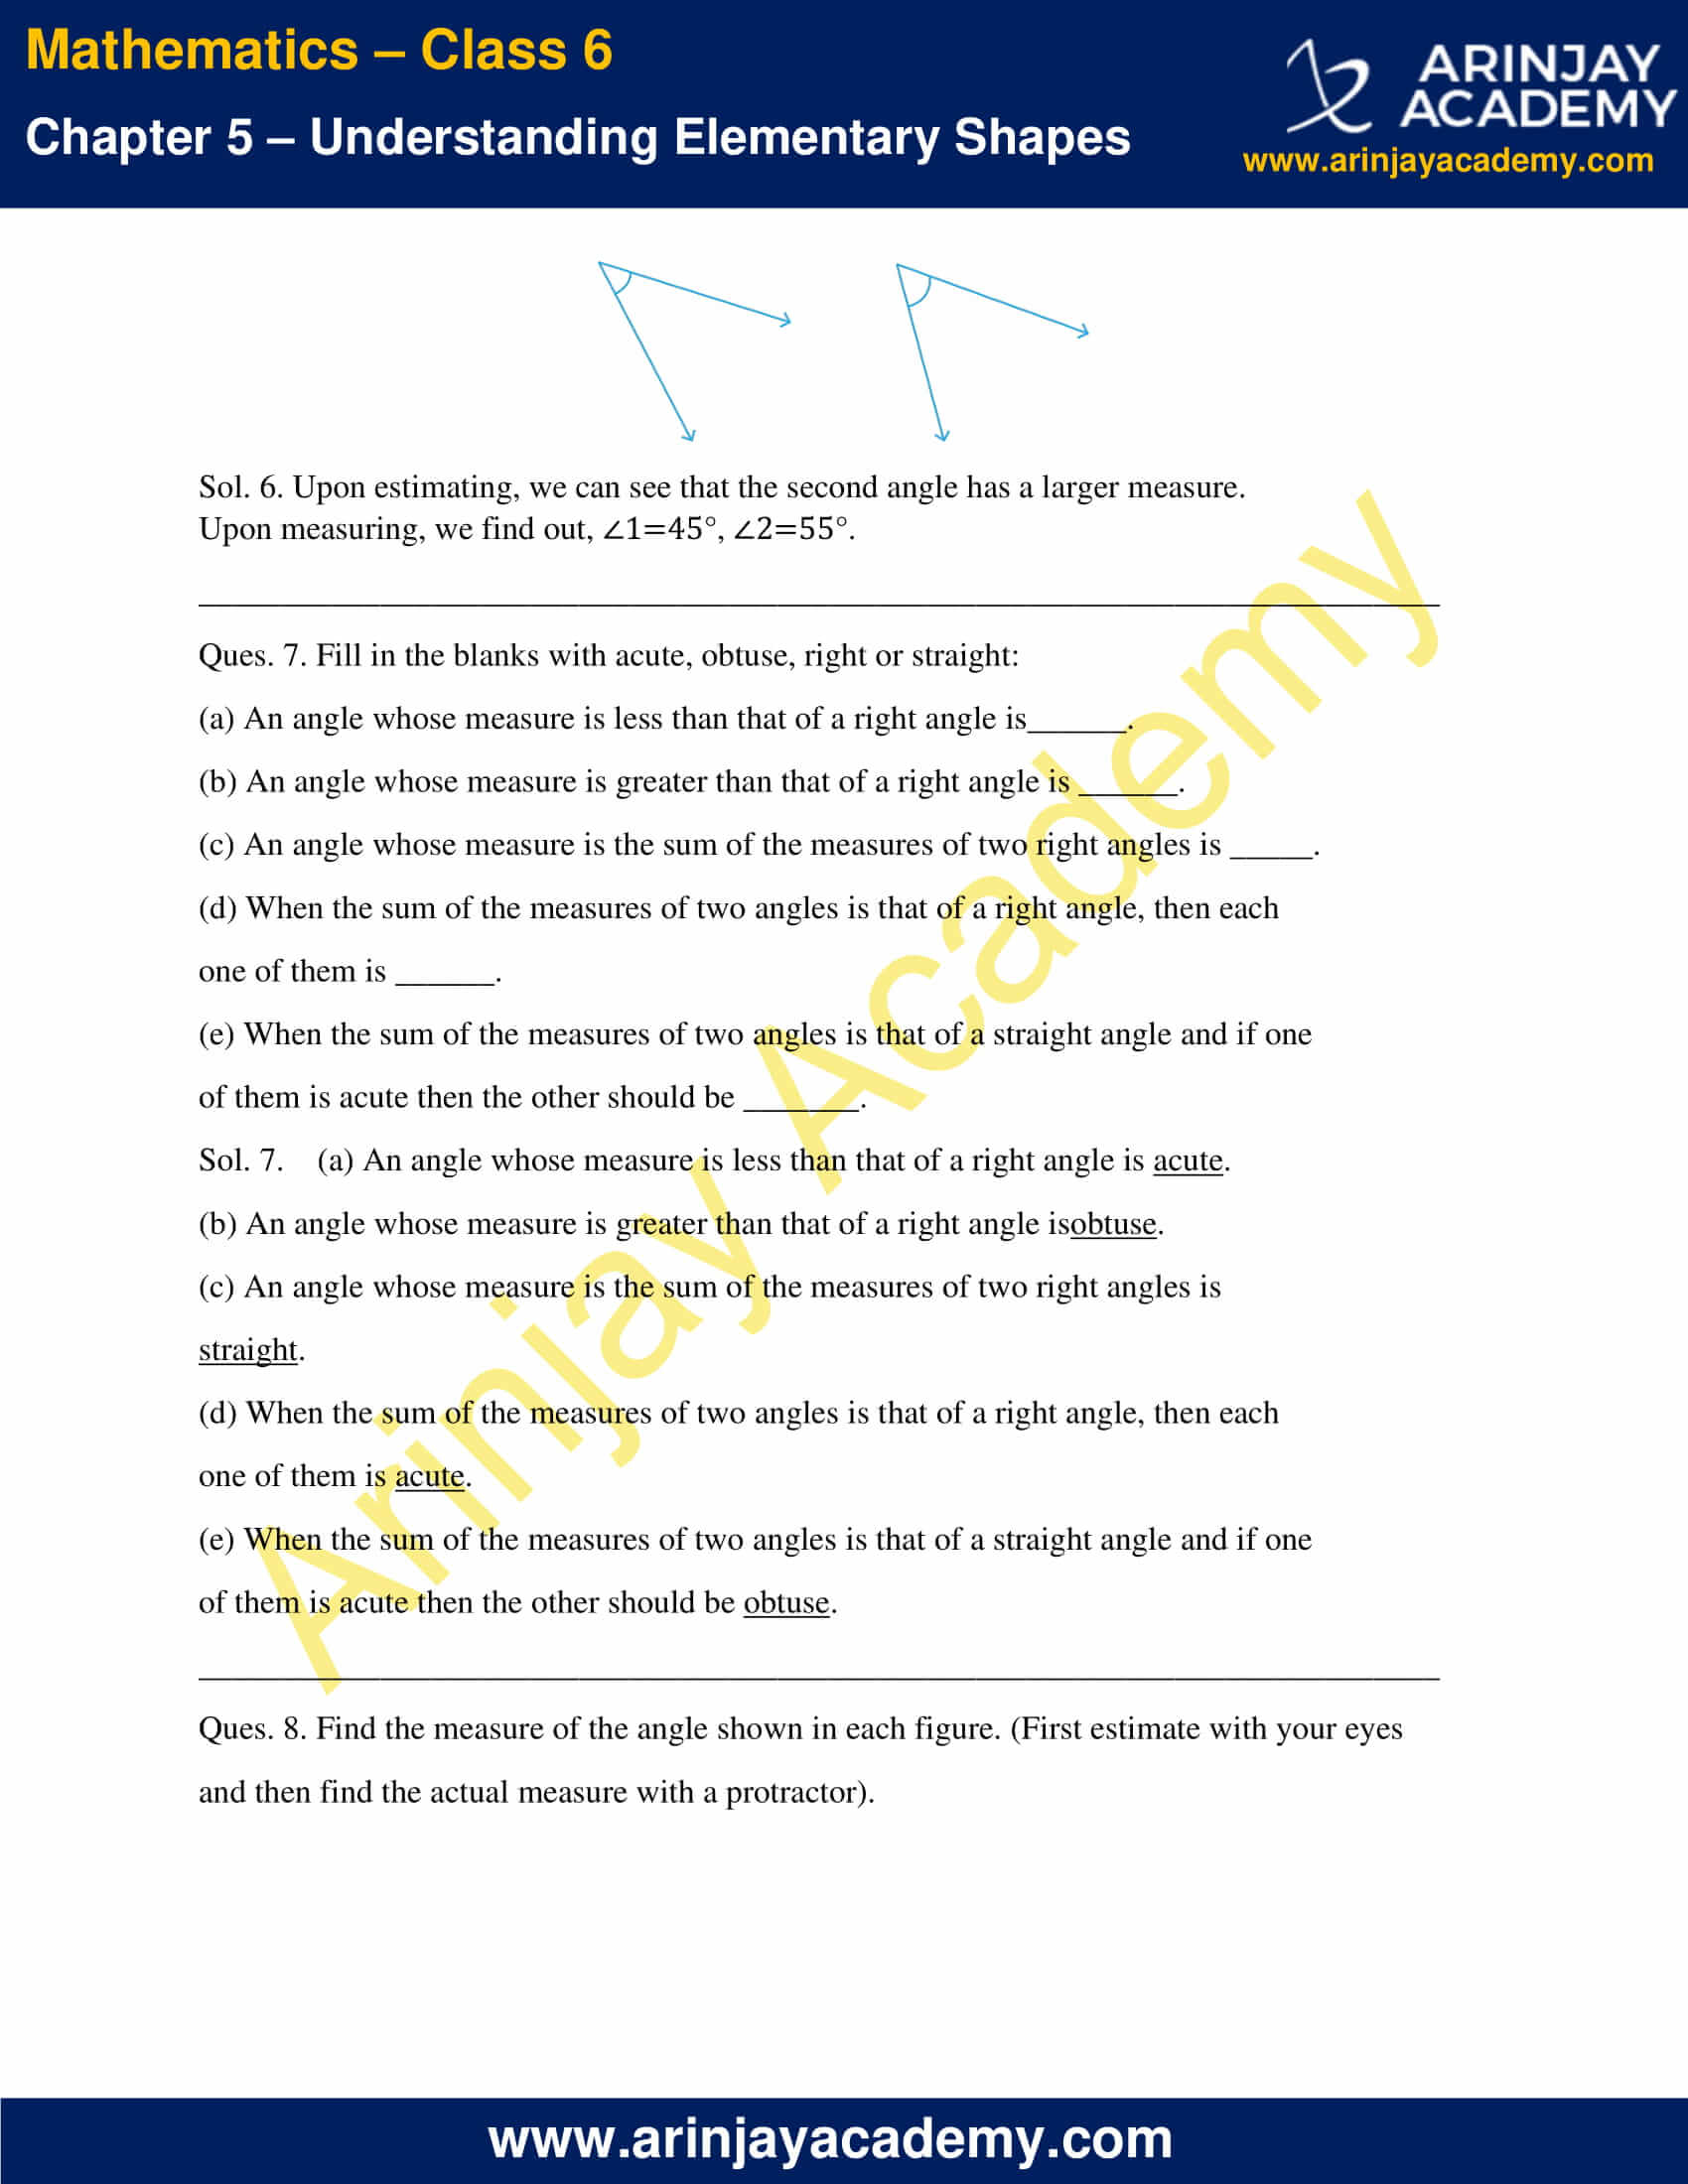 NCERT Solutions for Class 6 Maths Chapter 5 Exercise 5.4 image 3